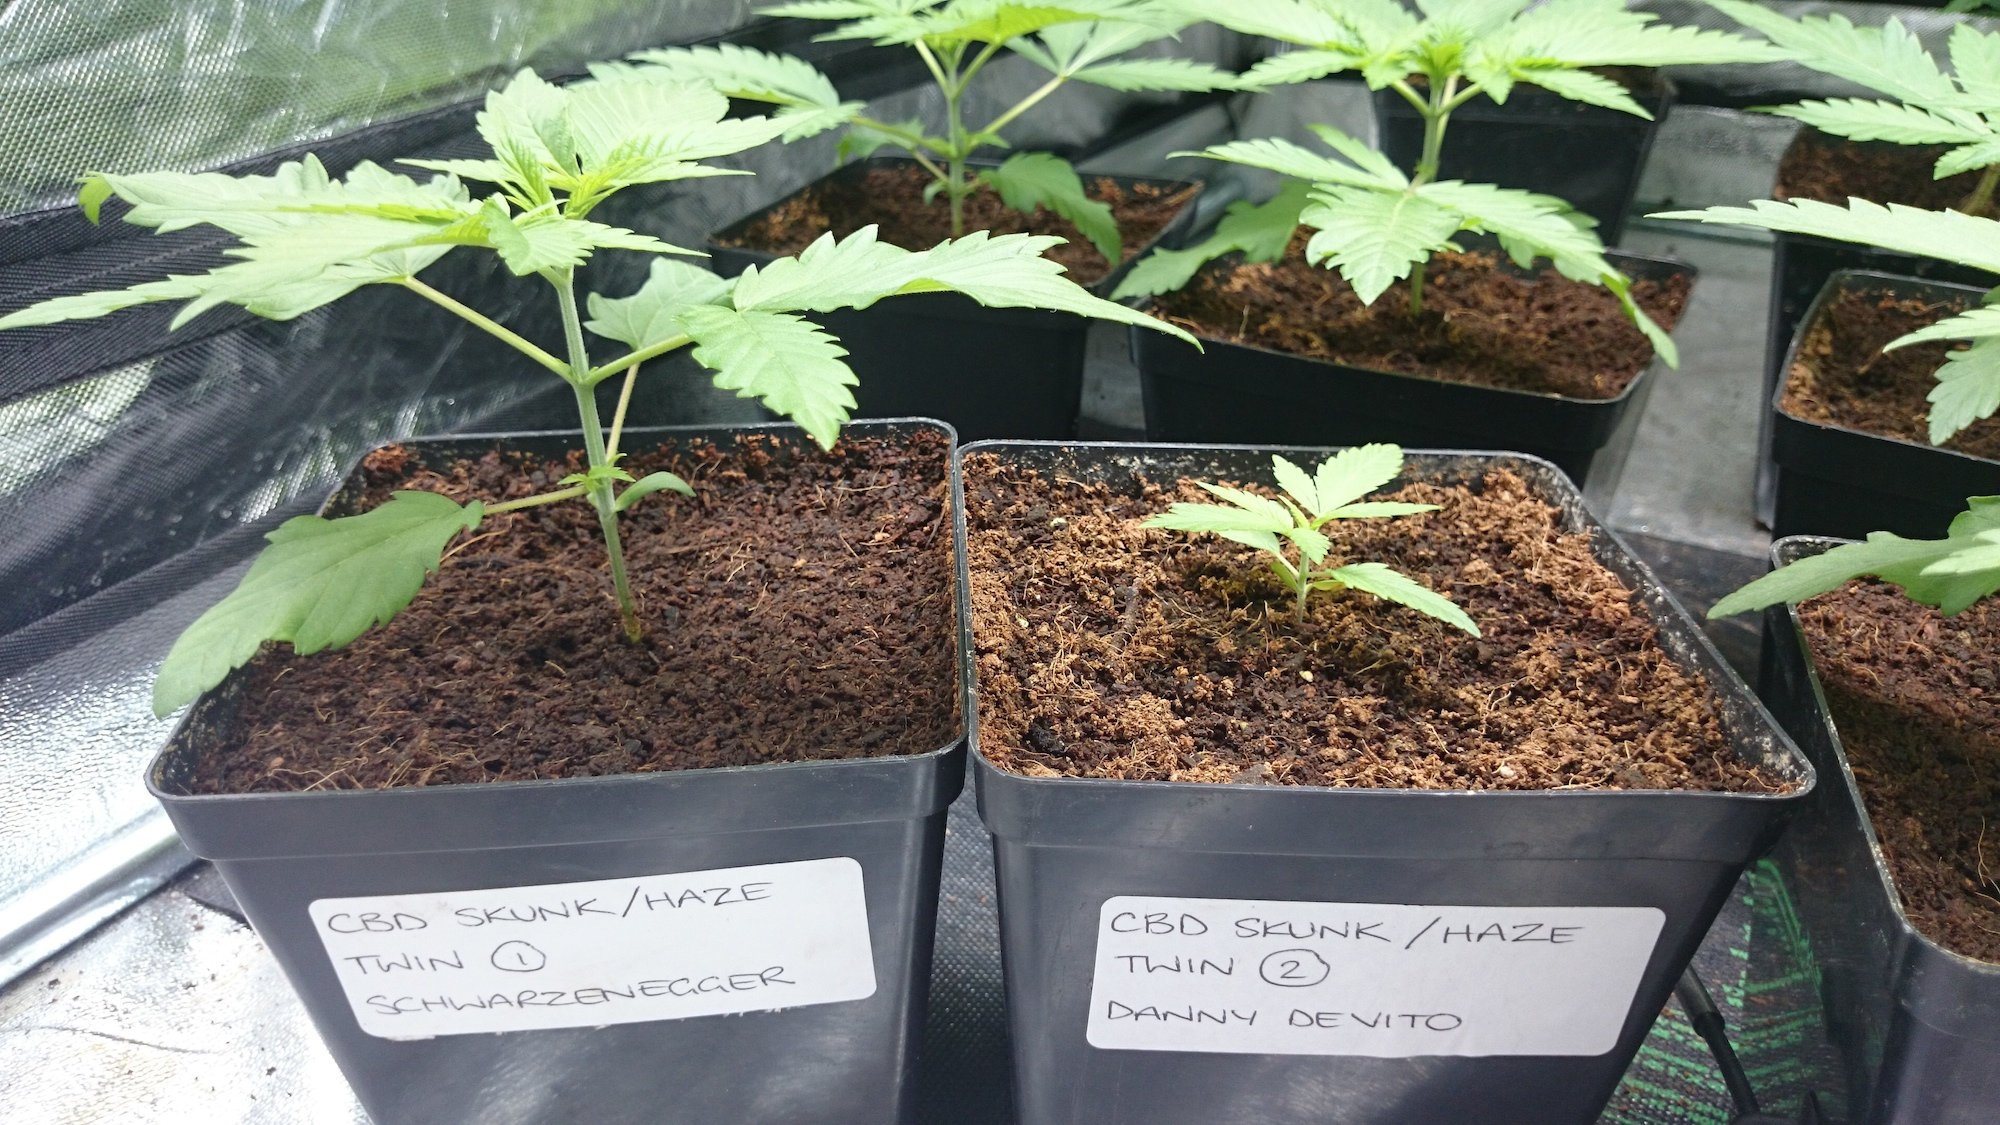 2 plants from one seed, twins